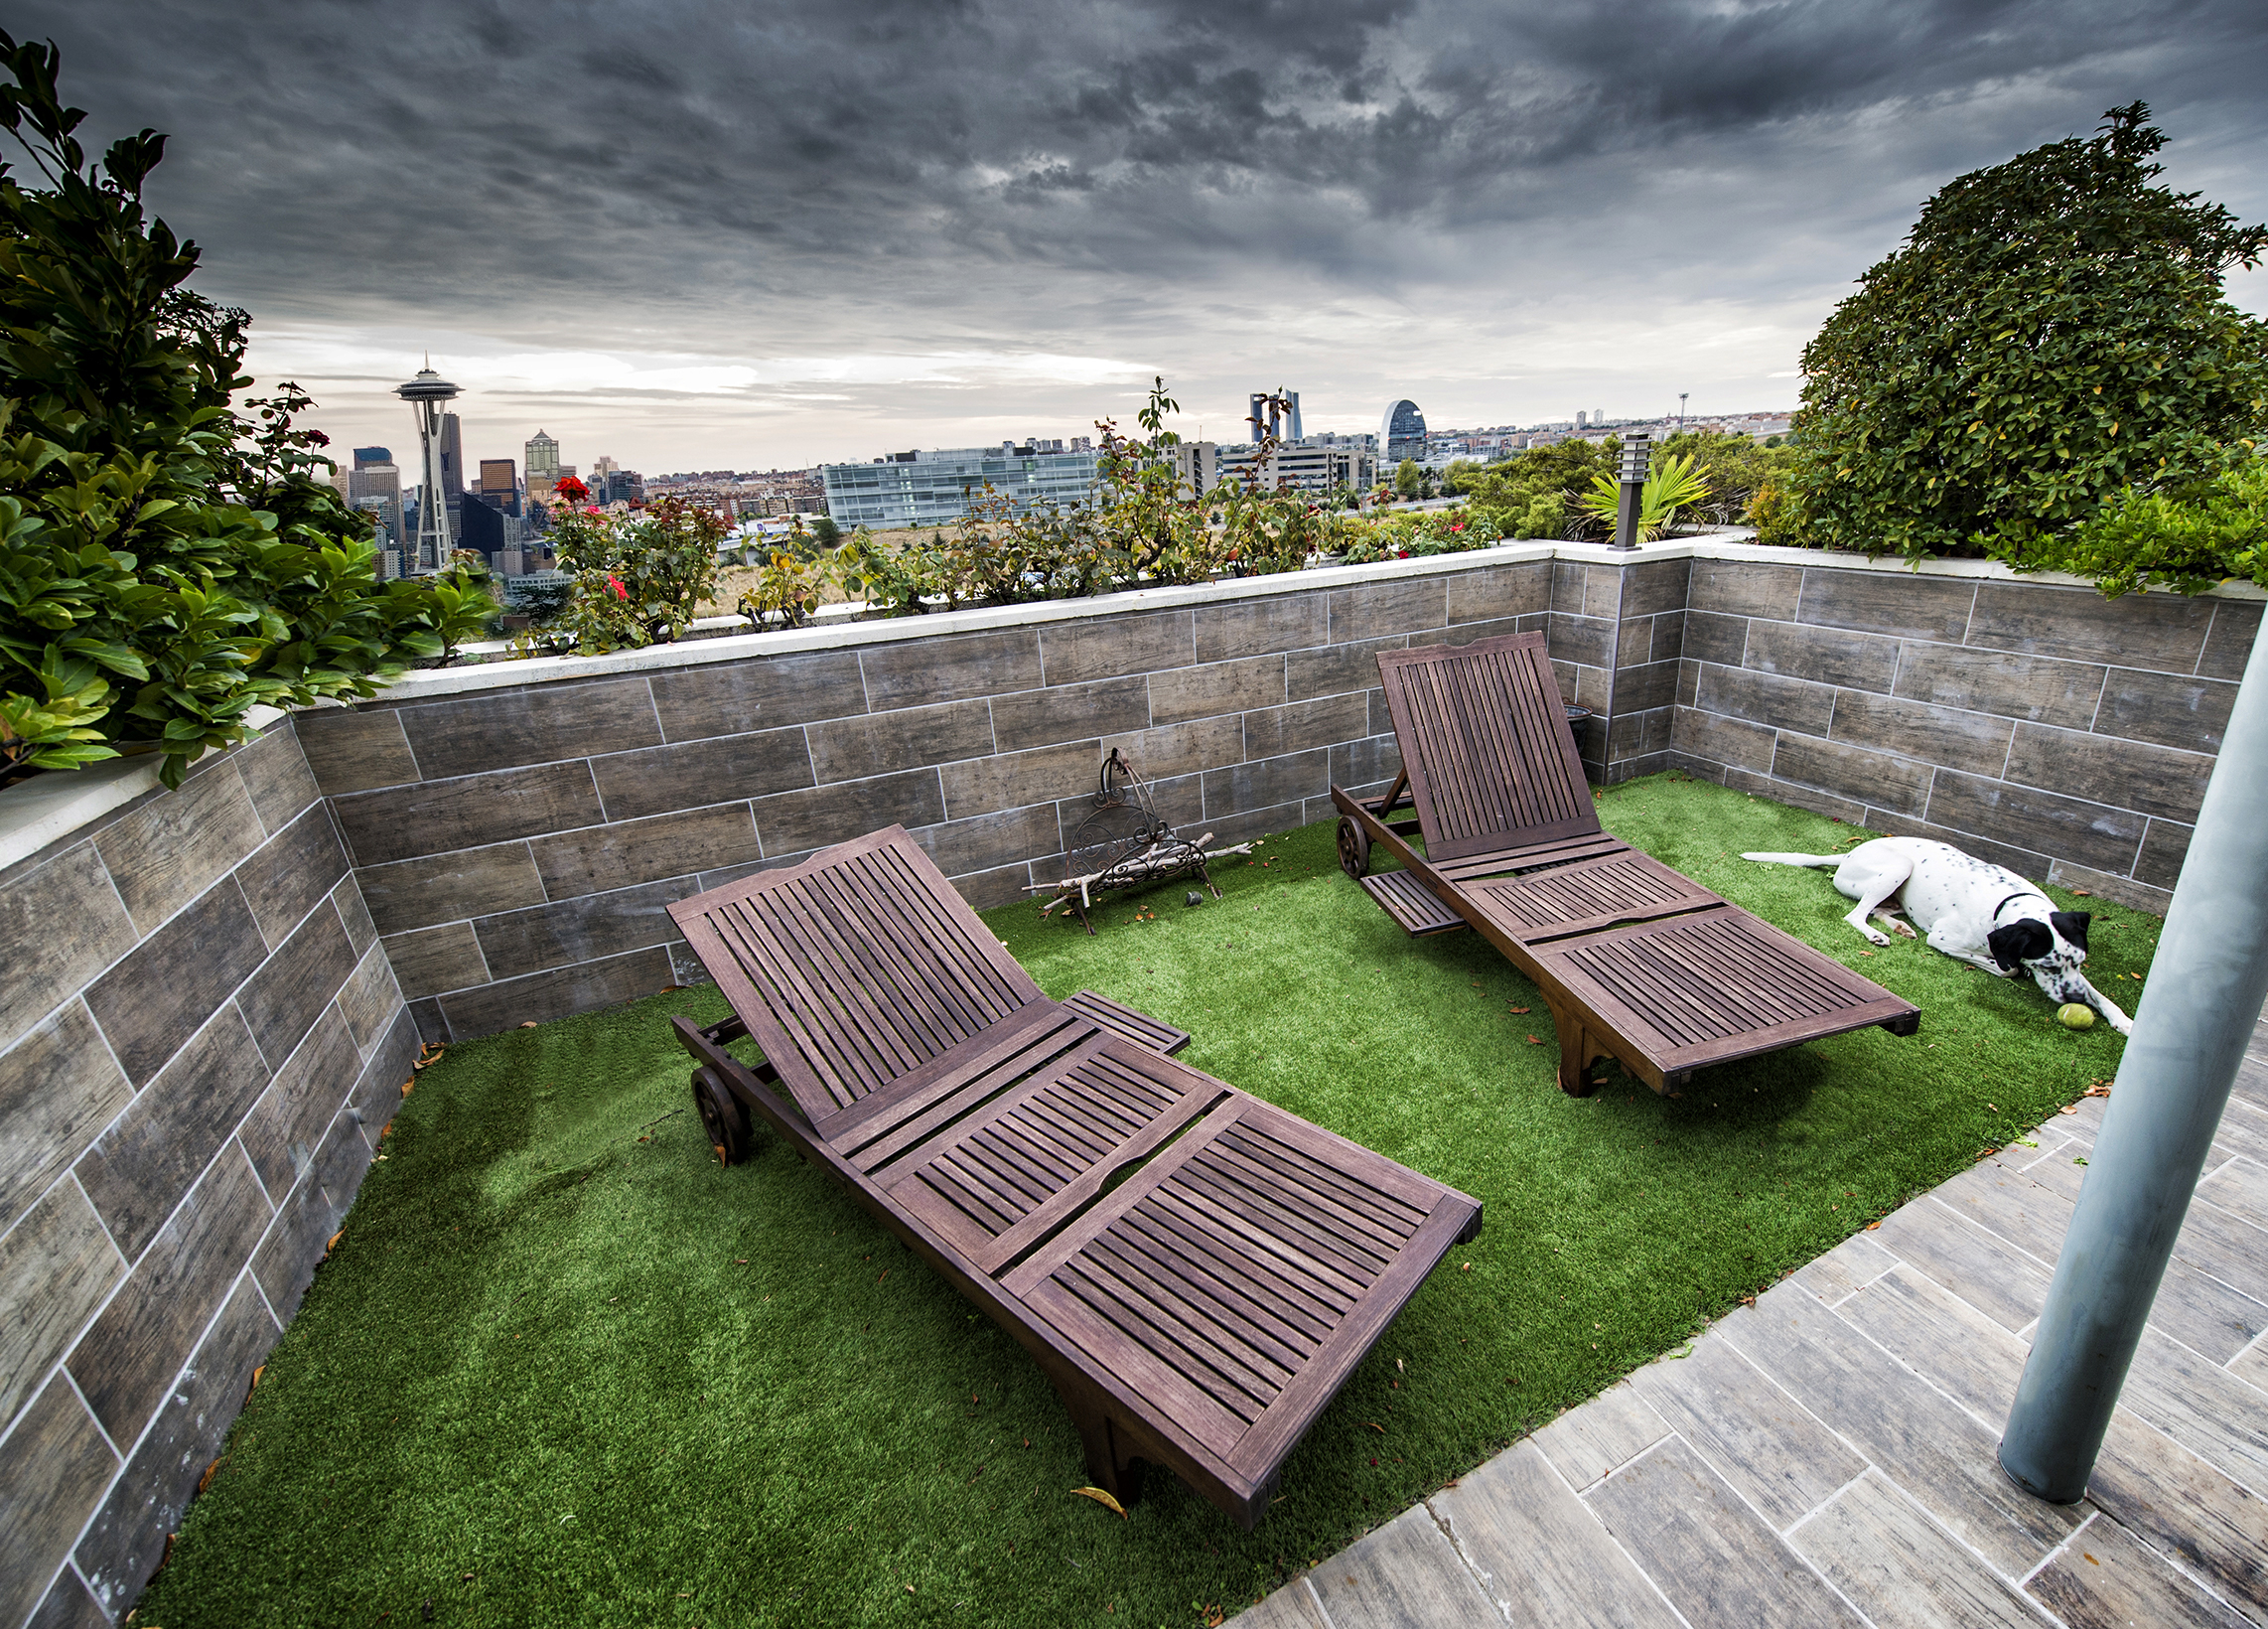 A photo of a backyard garden with two chairs and a dog. The Seattle skyline is visible.